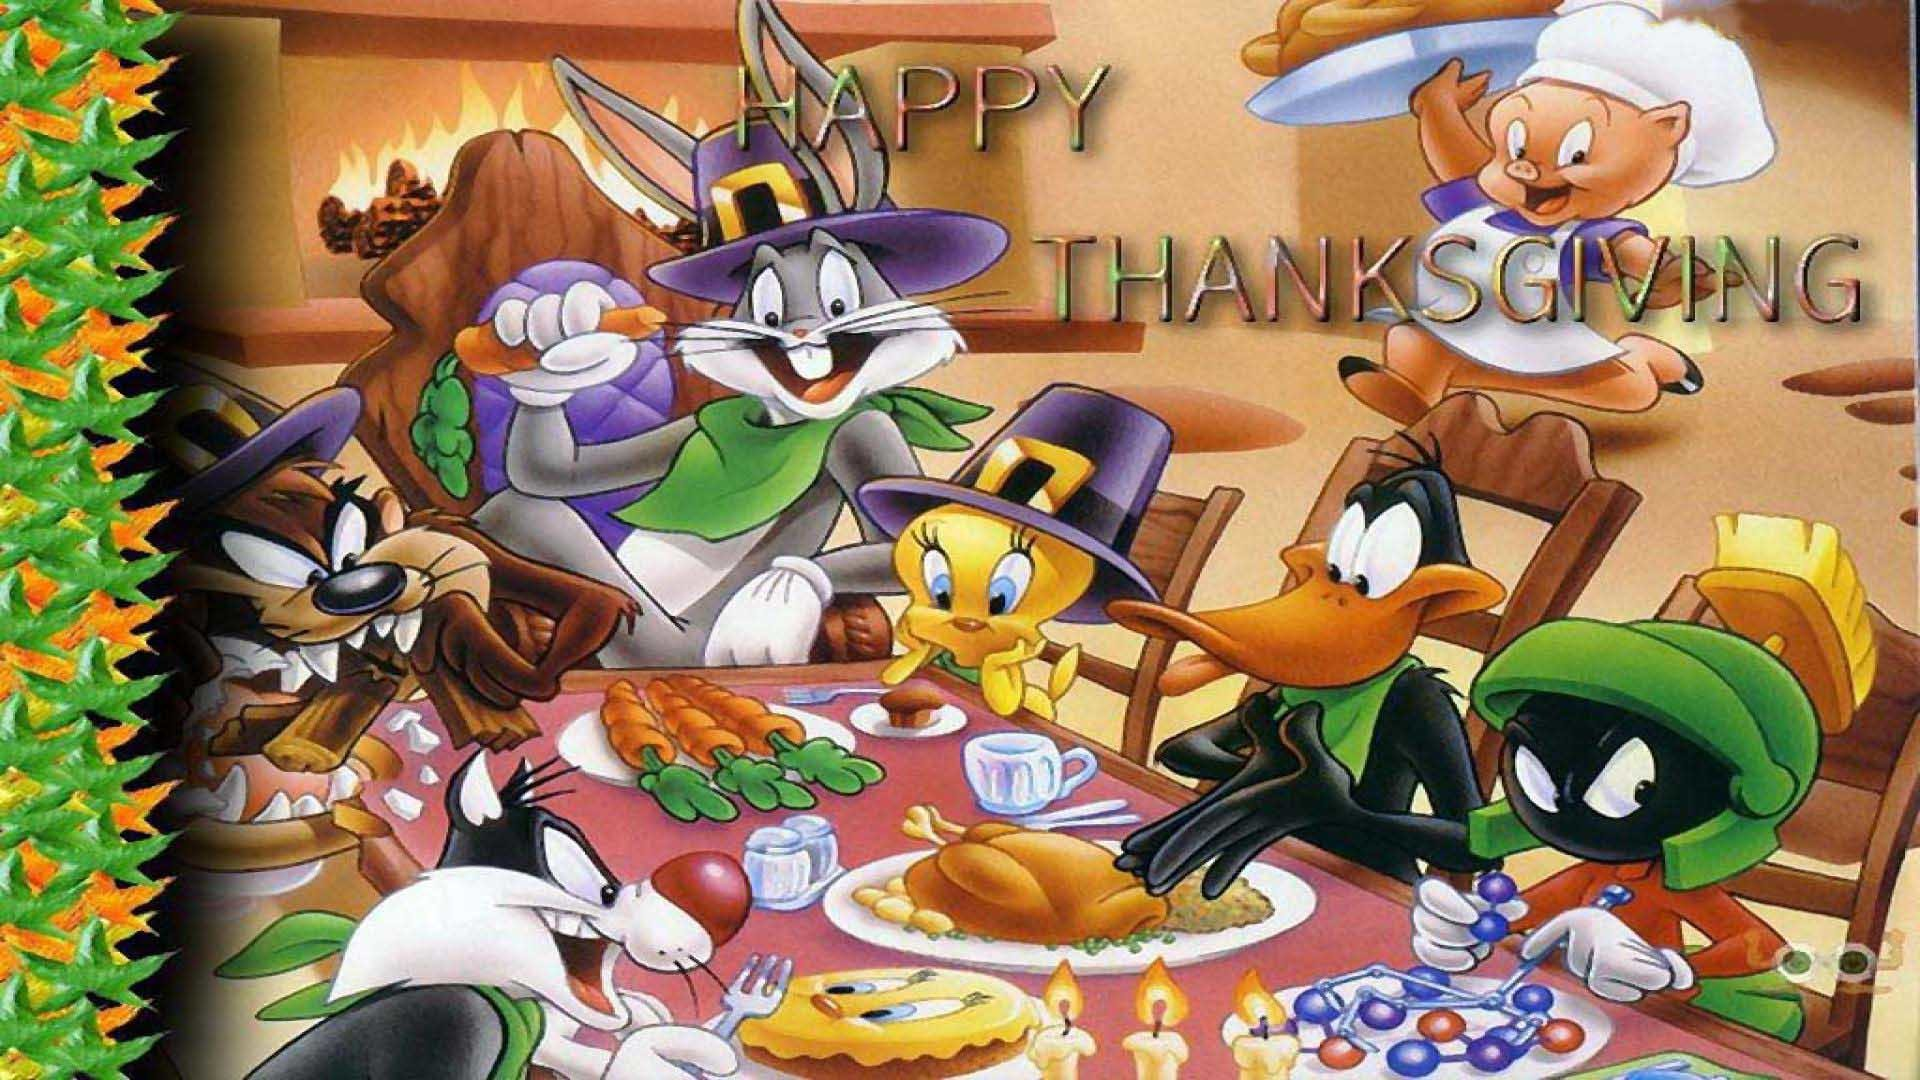 1920x1080 thanksgiving wallpaper: Thanksgiving Desktop Wallpapers Backgrounds (58+ Images